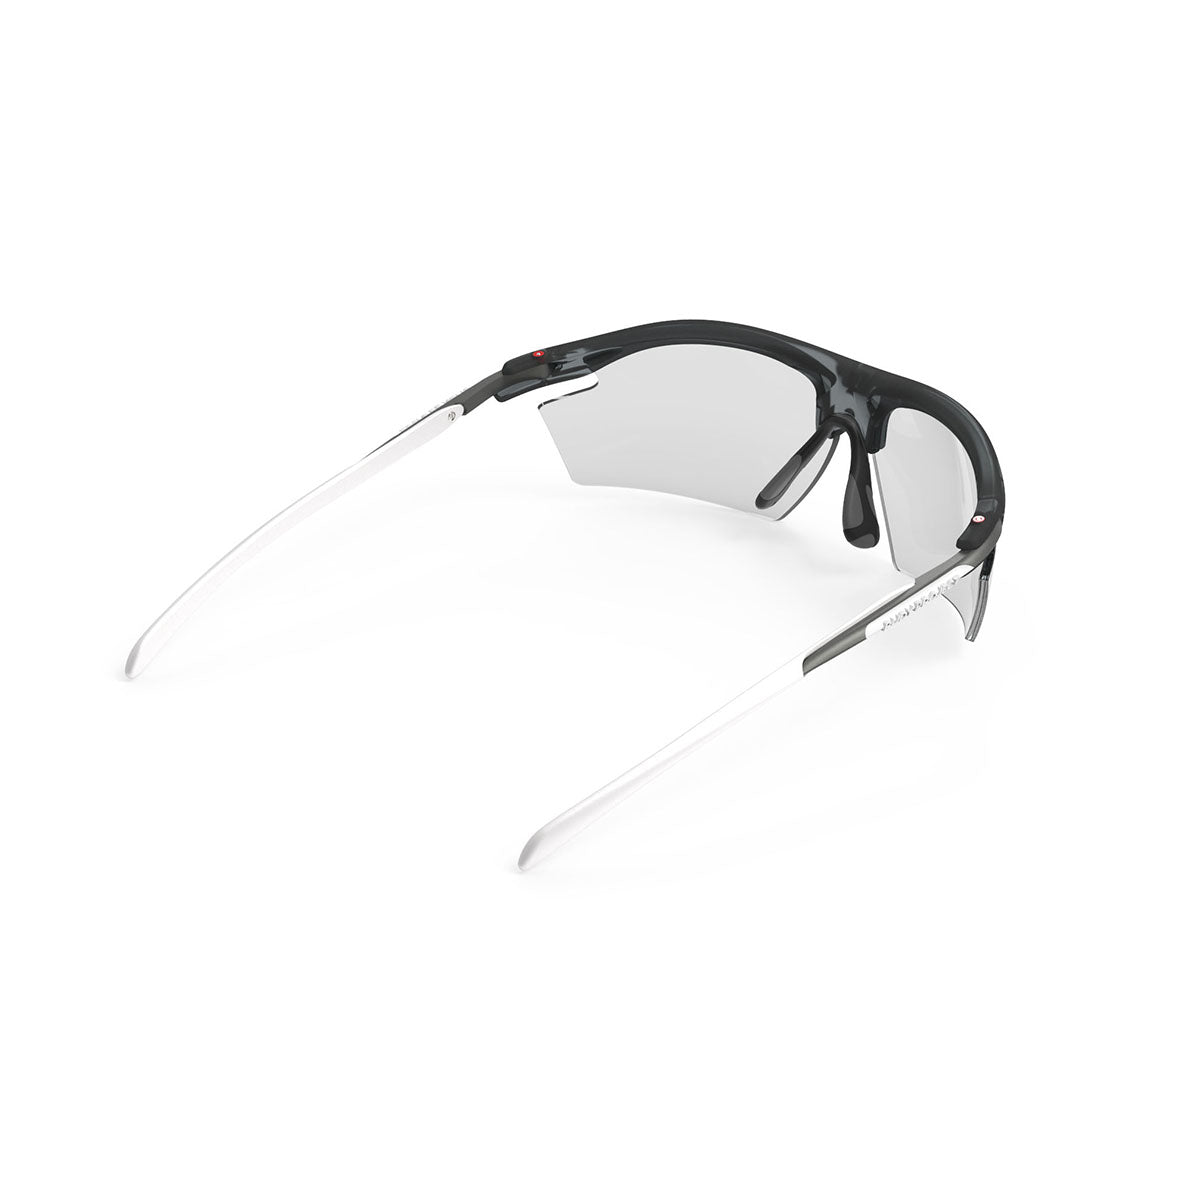 Rudy Project - Rydon - frame color: Frozen Ash - lens color: ImpactX-2 Photochromic Clear to Laser Black - photo angle: Top Back Angle Variant Hover Image